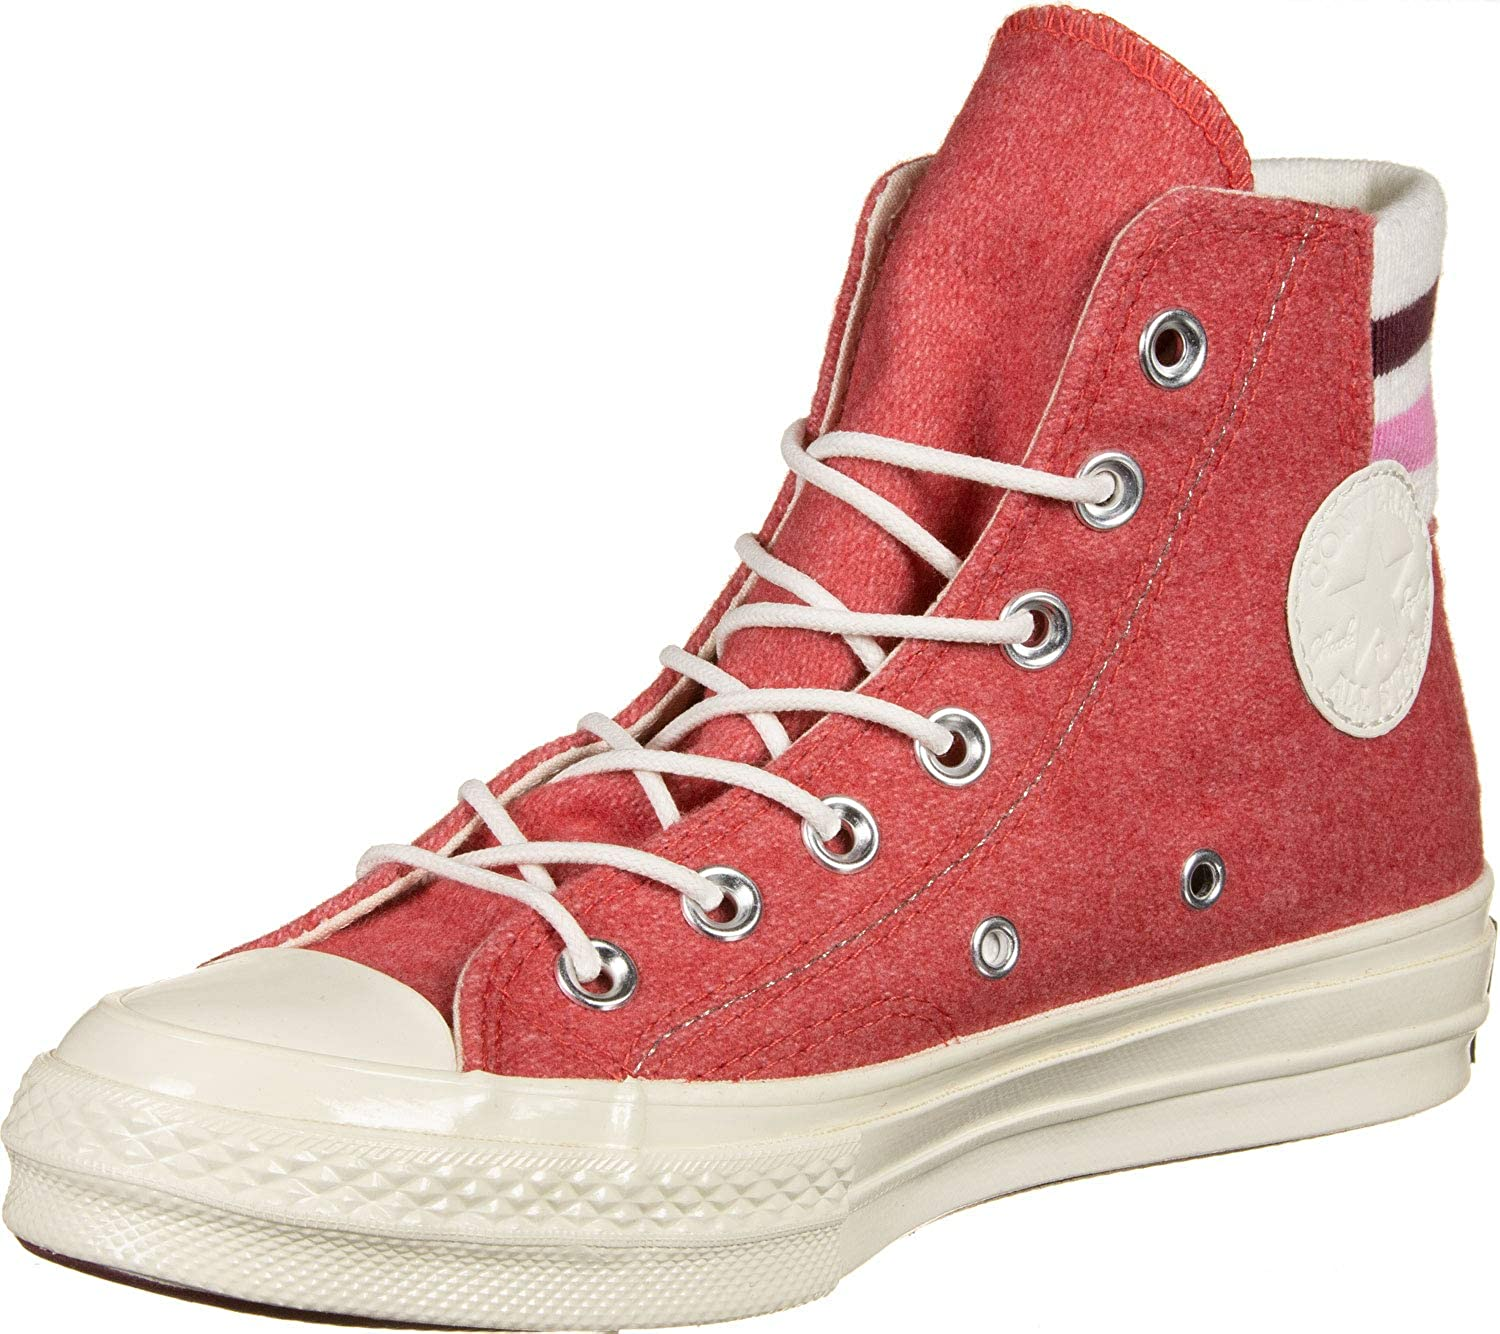 Converse Unisex Chuck Taylor All Star 70 Hi Basketball shoes